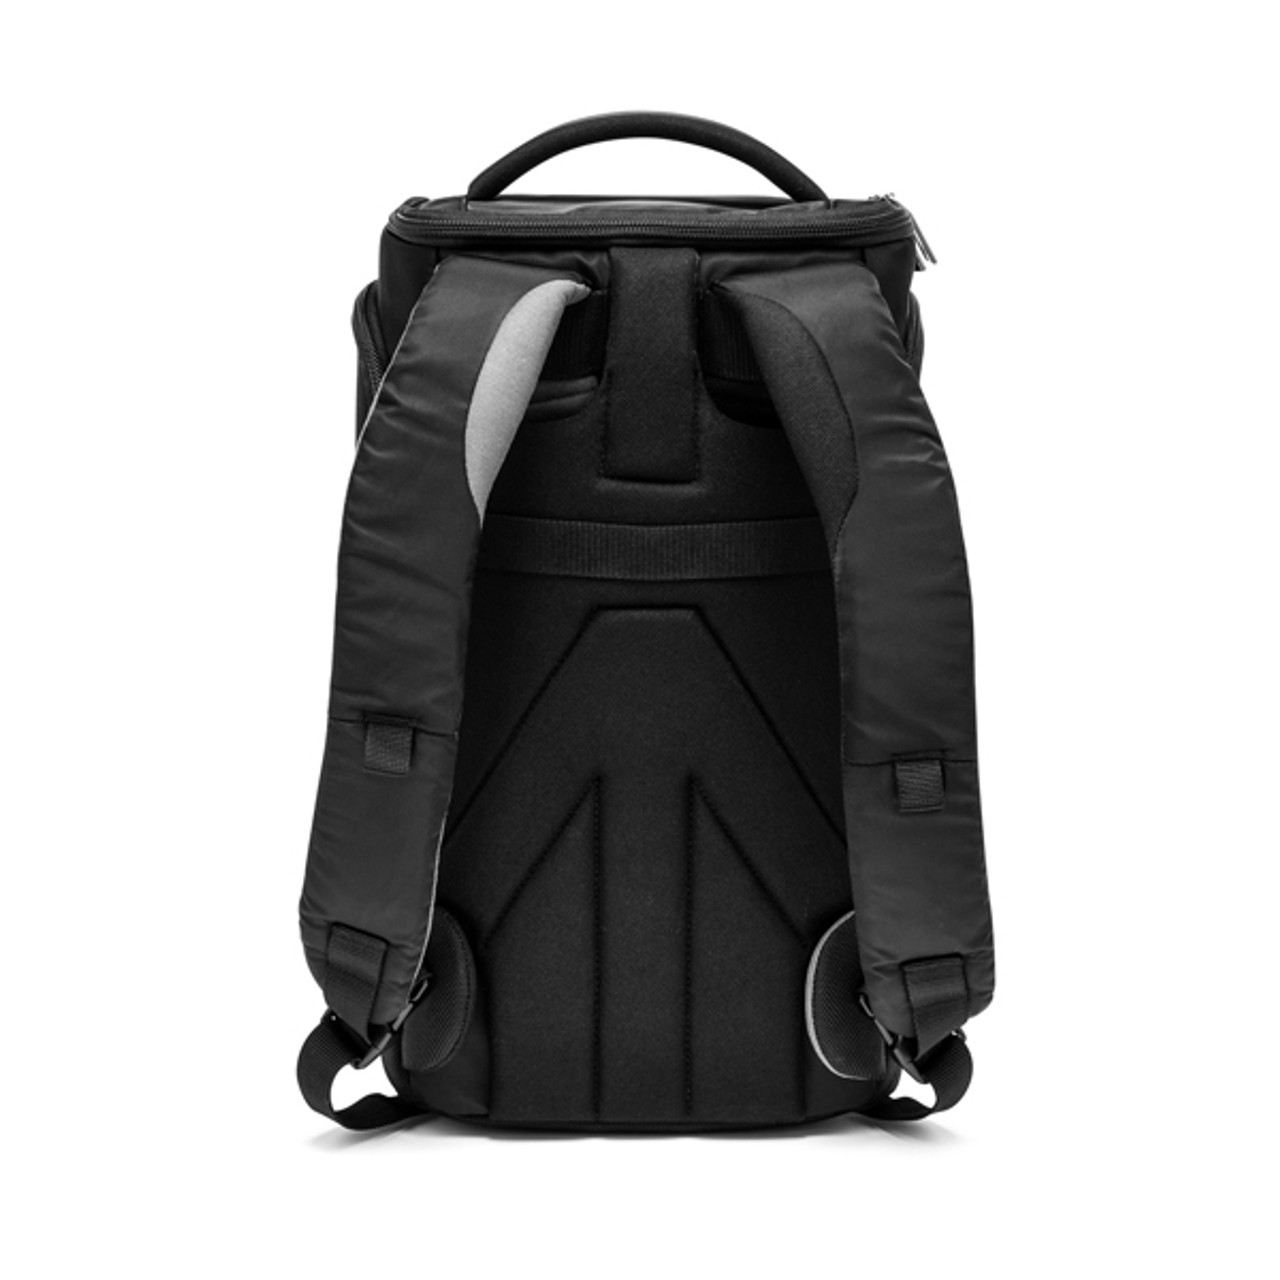 Manfrotto Advanced Tri-Backpack Medium Black